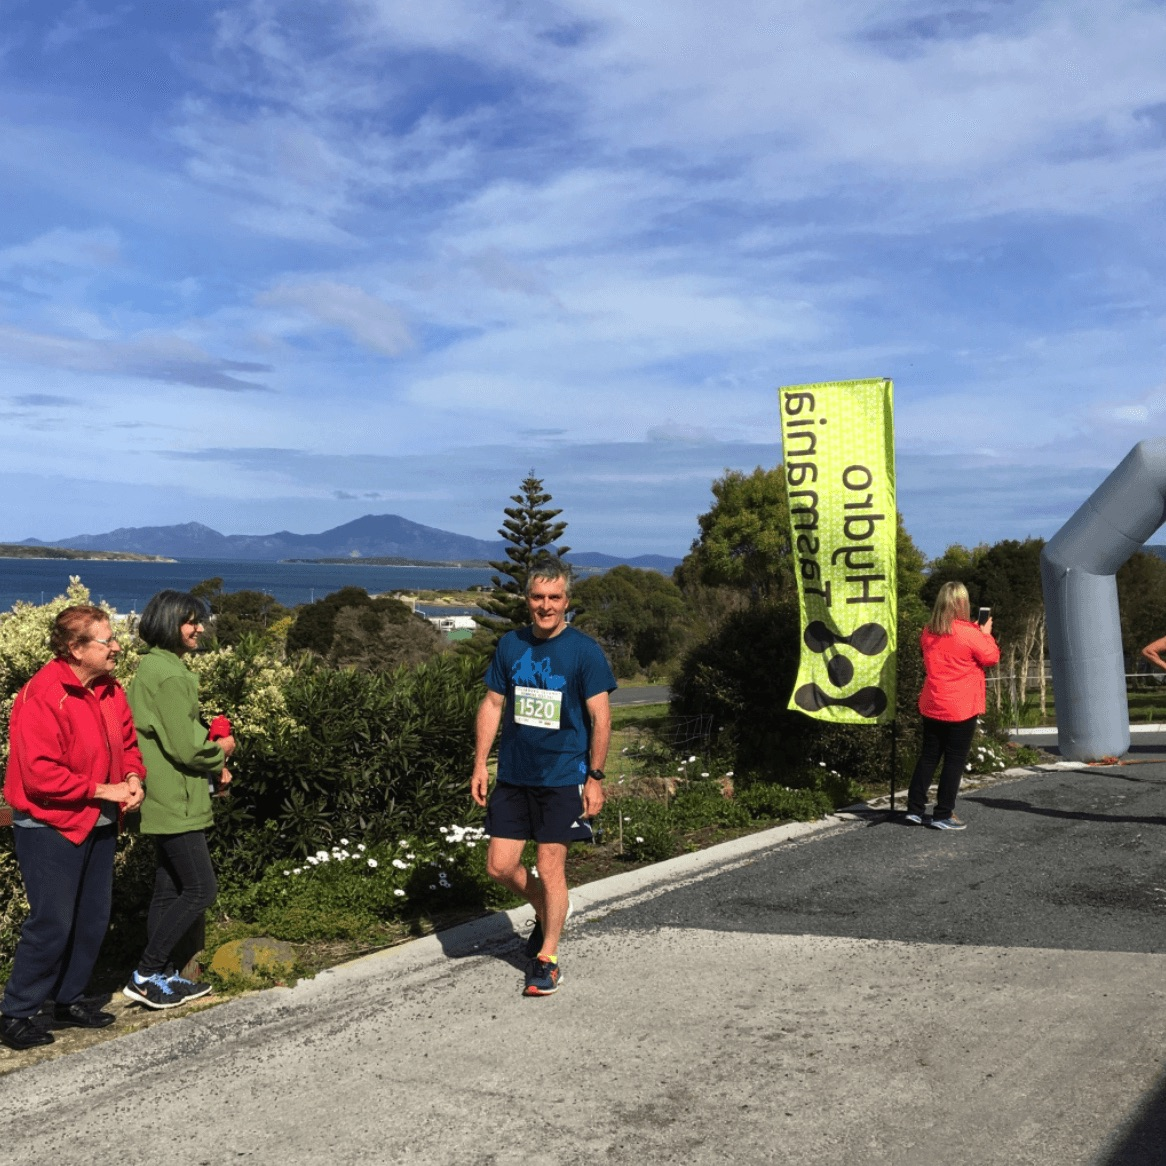 Fig 3 David Heap, an original committee member of the Running Festival and local physiotherapist, after crossing the finish line of the 2017 Pub to Pub outside Lady Barron's Furneaux Tavern.